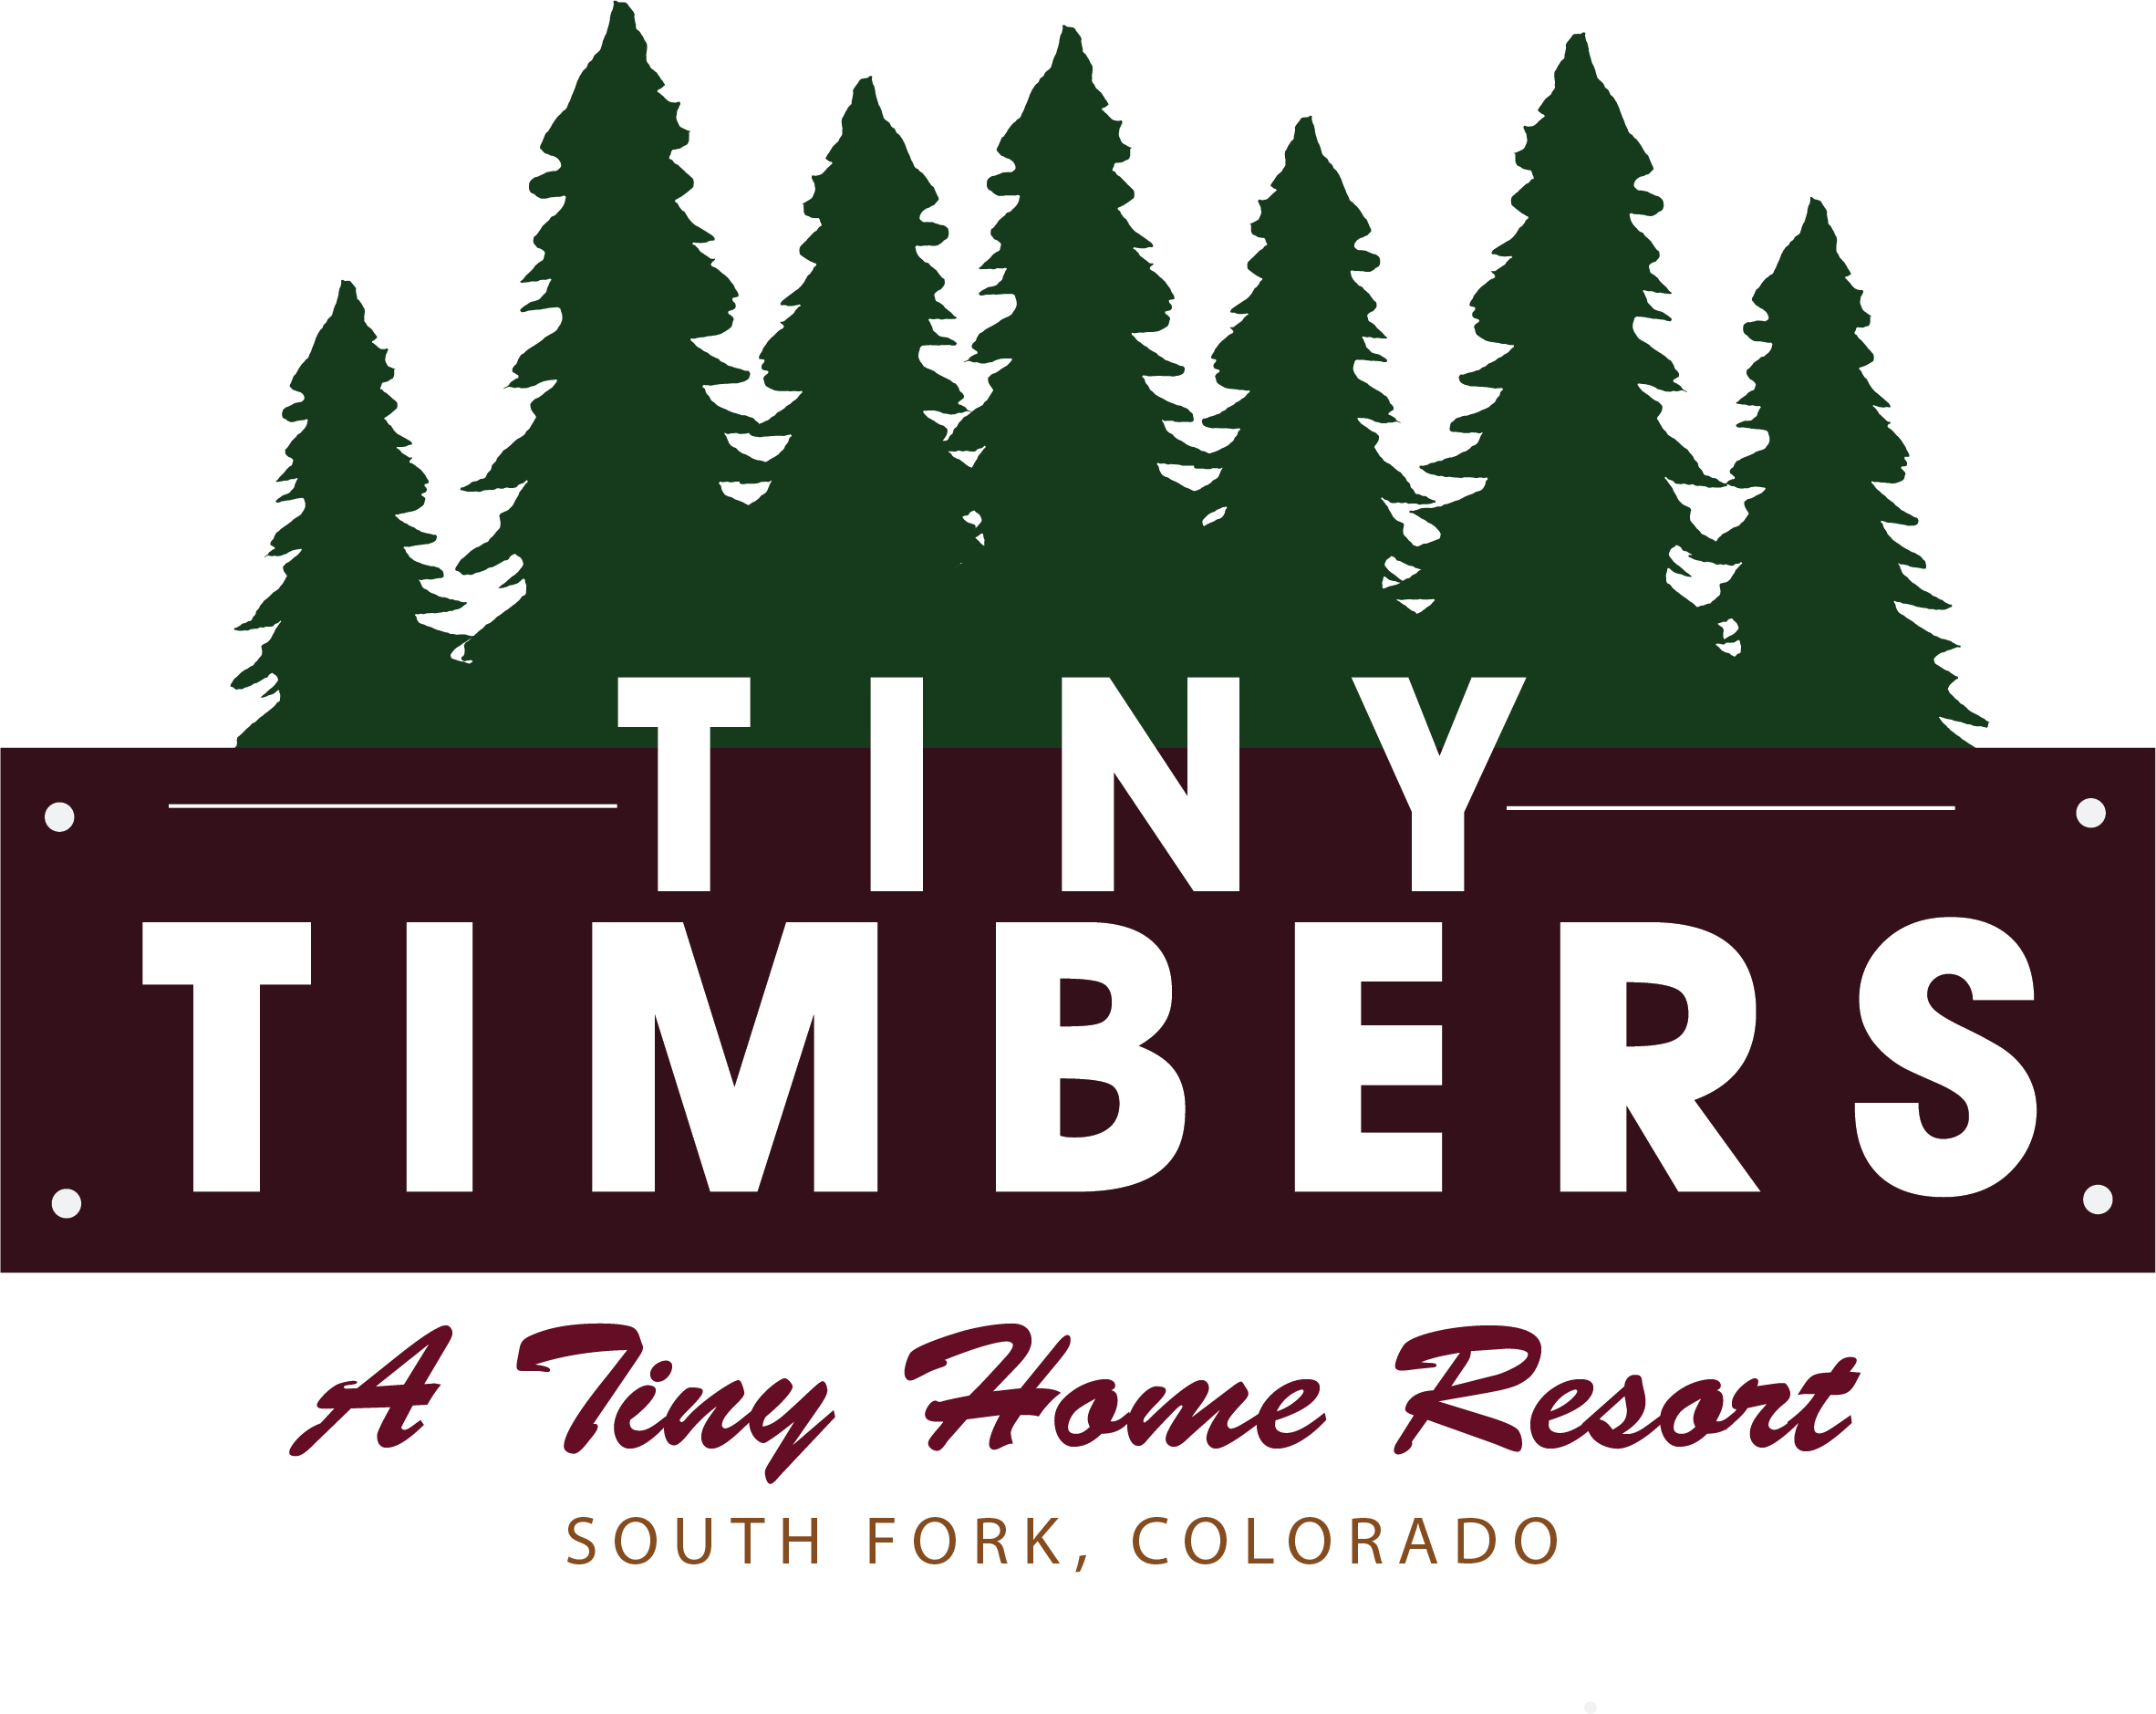 Tiny Timbers Resort